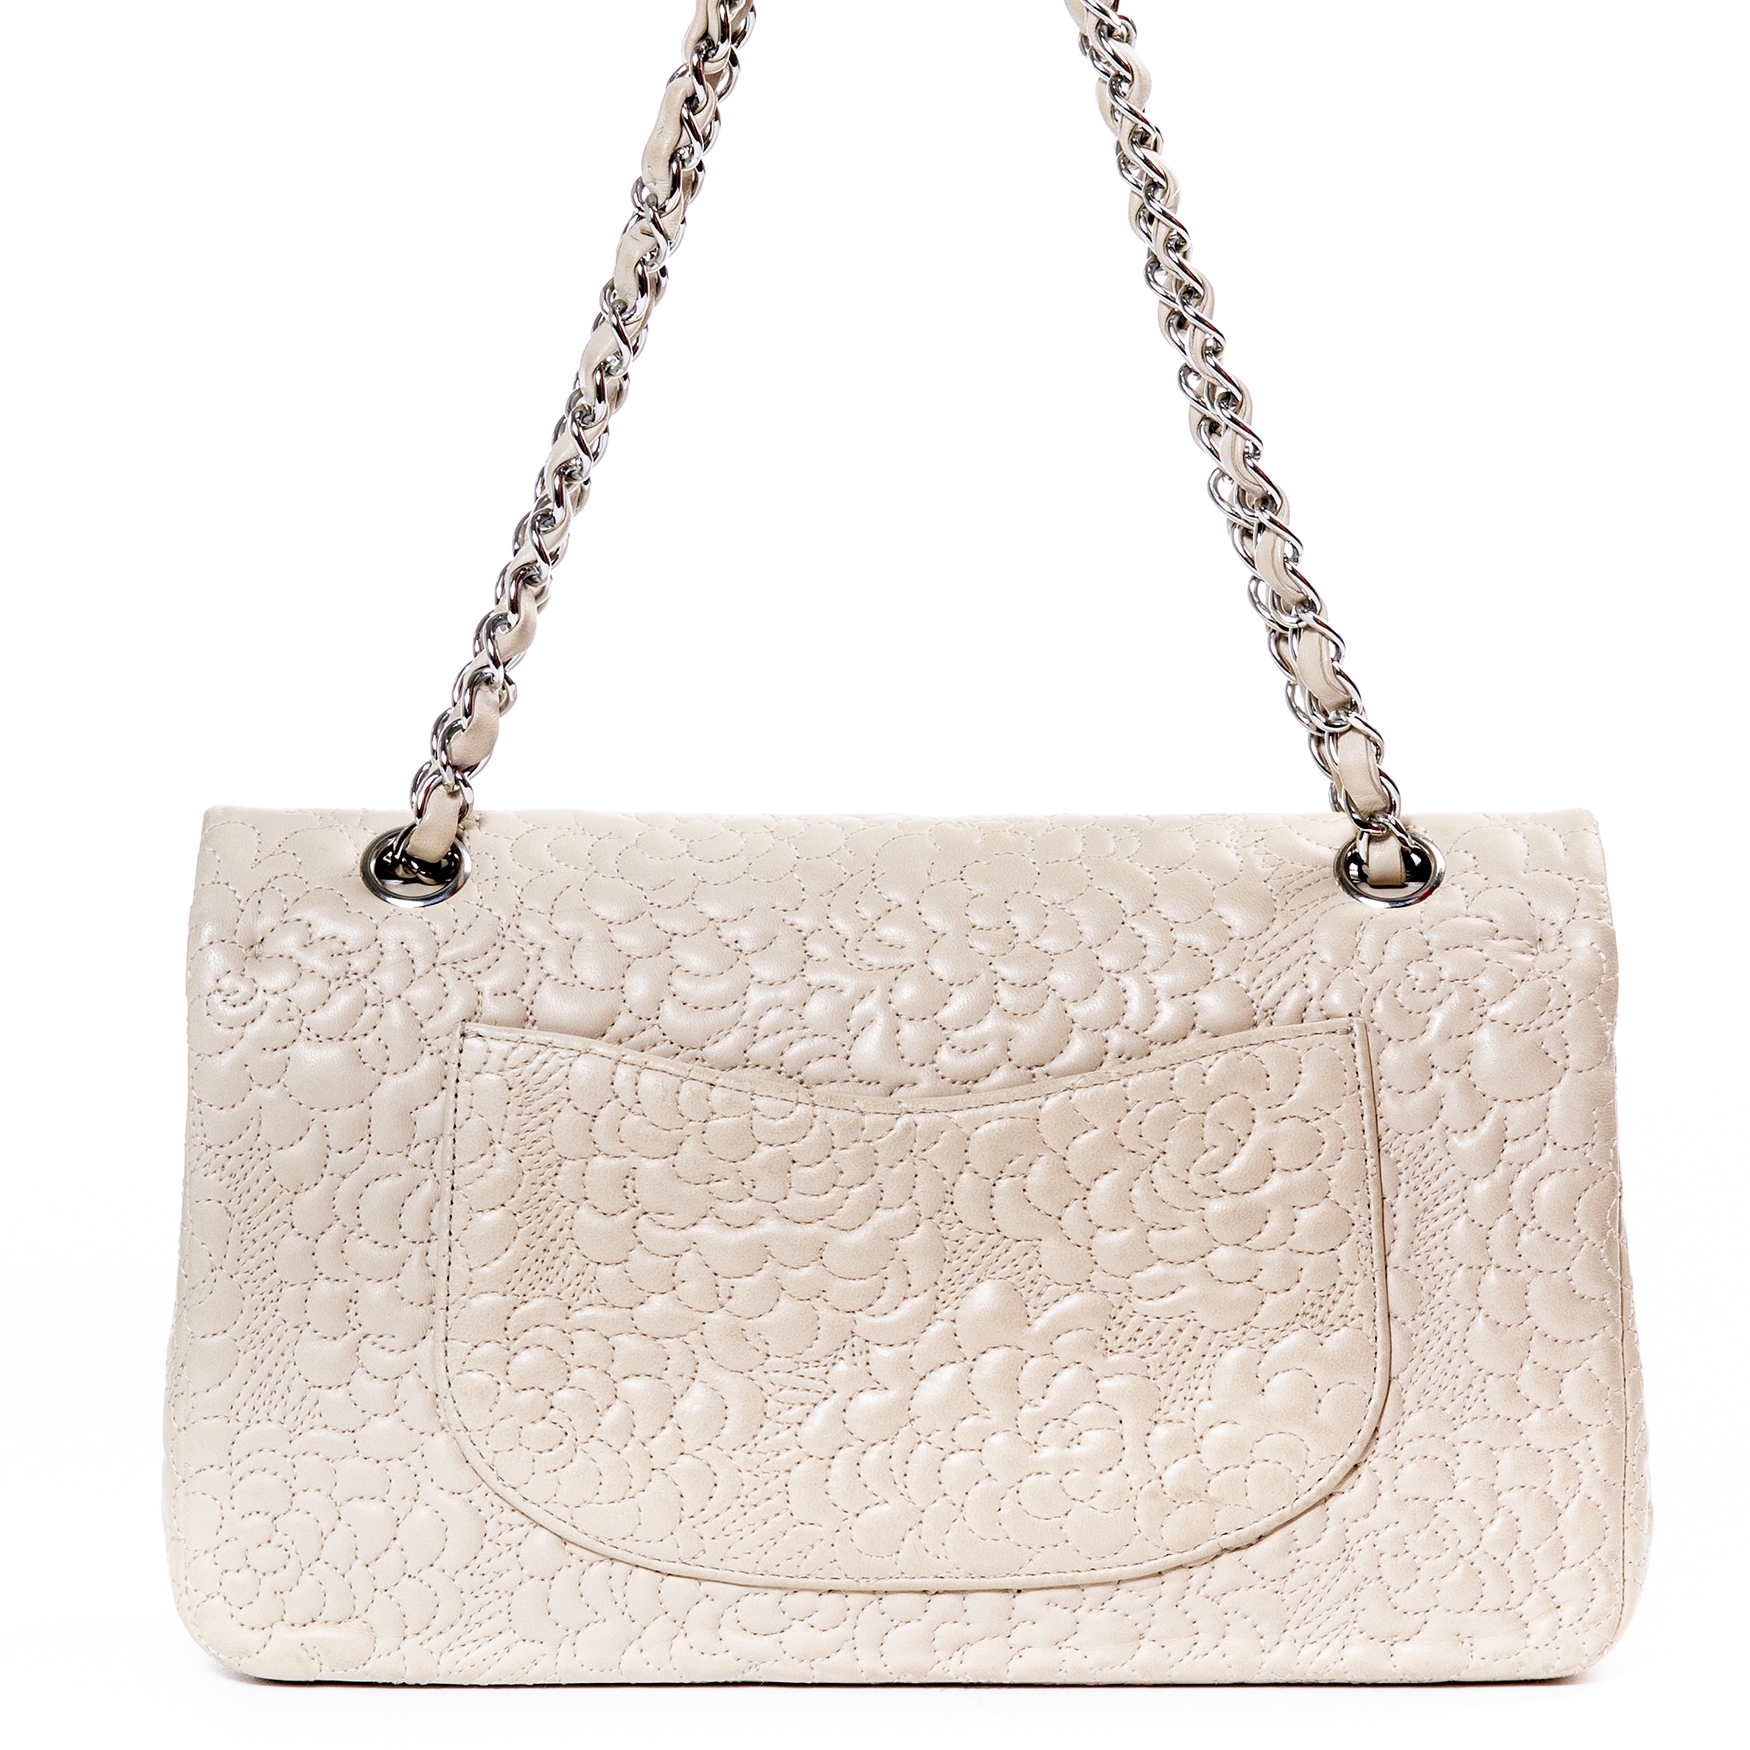 1896707efdb1b1 ... achetez Chanel Classic Flapbag Quilted Flower Medium chez labellov